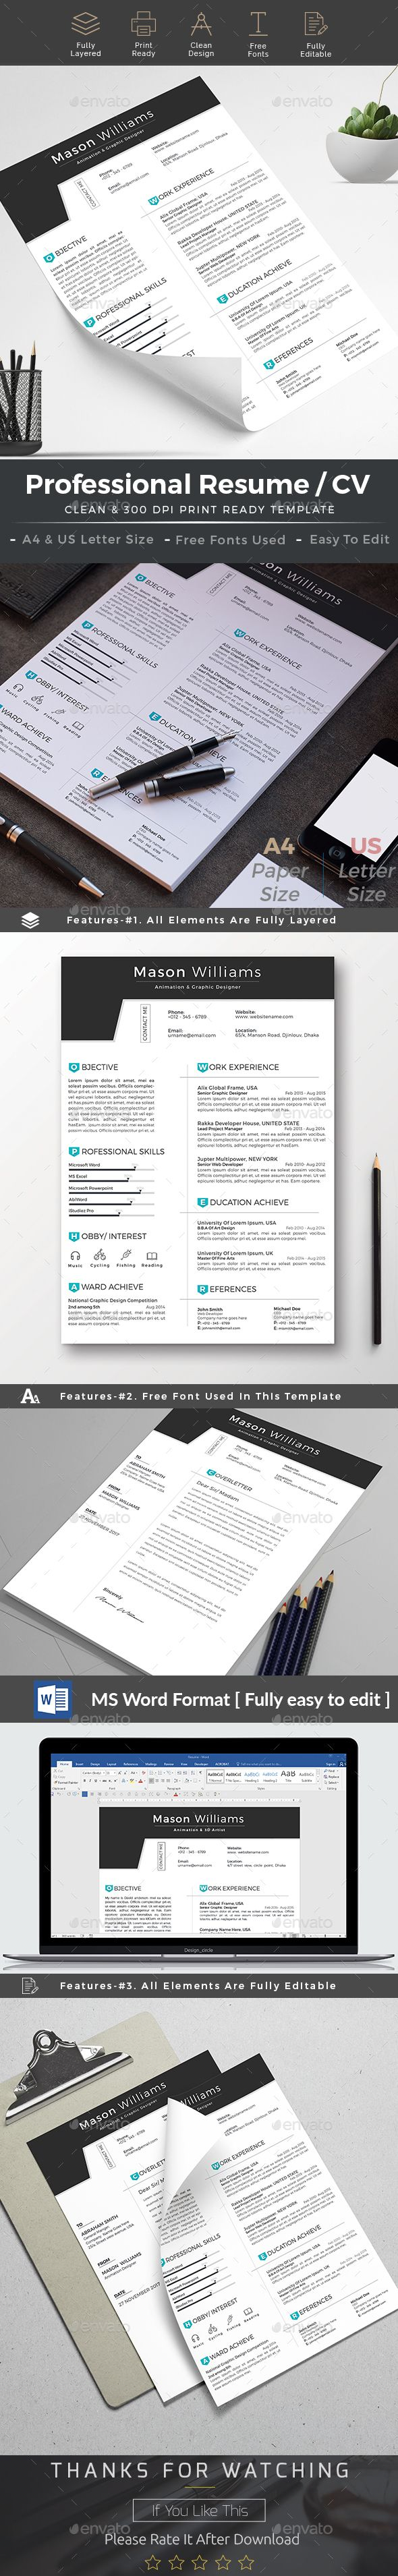 free creative resume templates that stand out%0A Resume cv word  Resume Design TemplateCreative